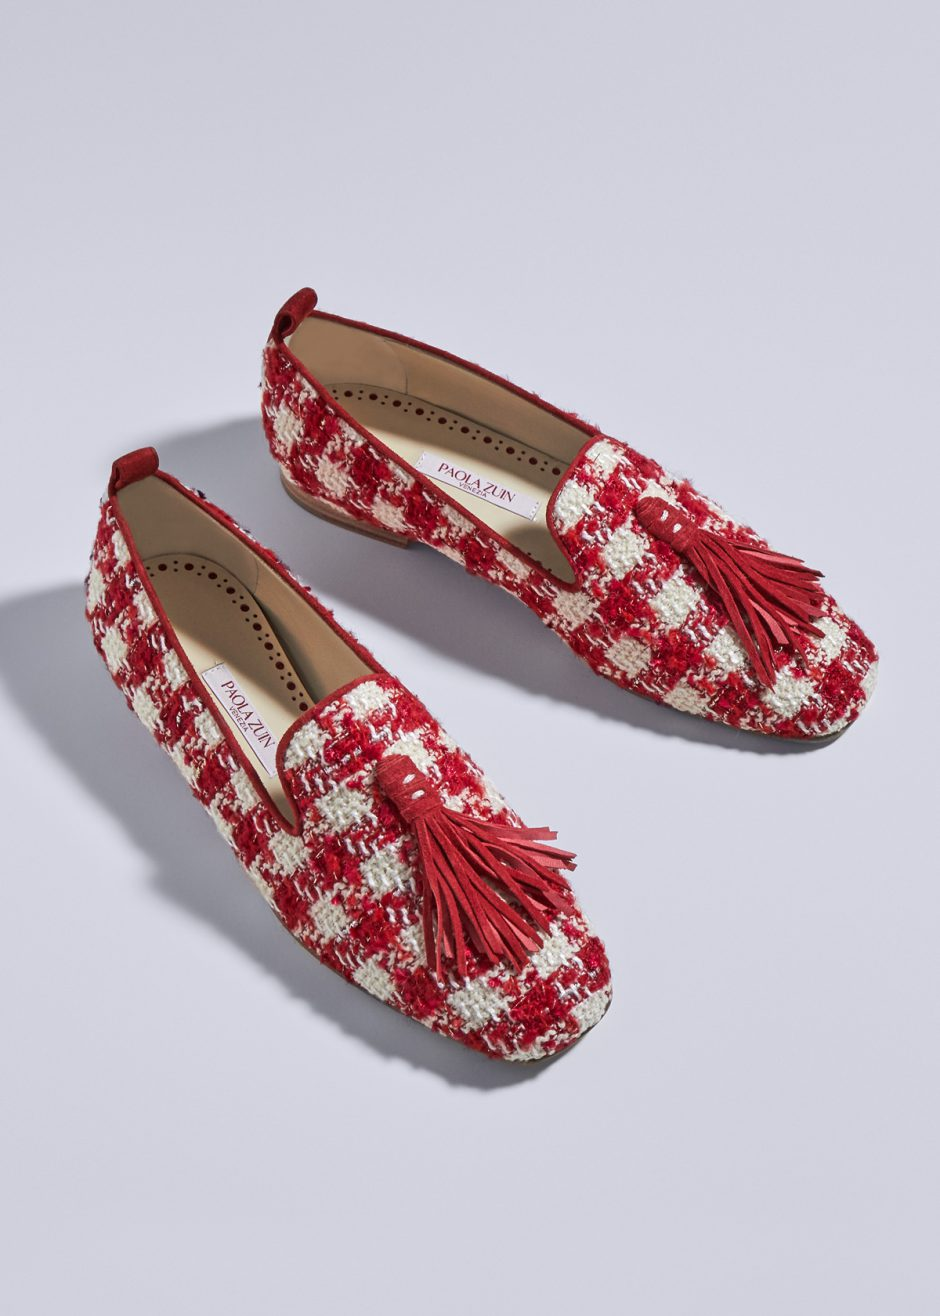 Sveva – Ballet flat Red/ivory hondstooth with red suede tassel